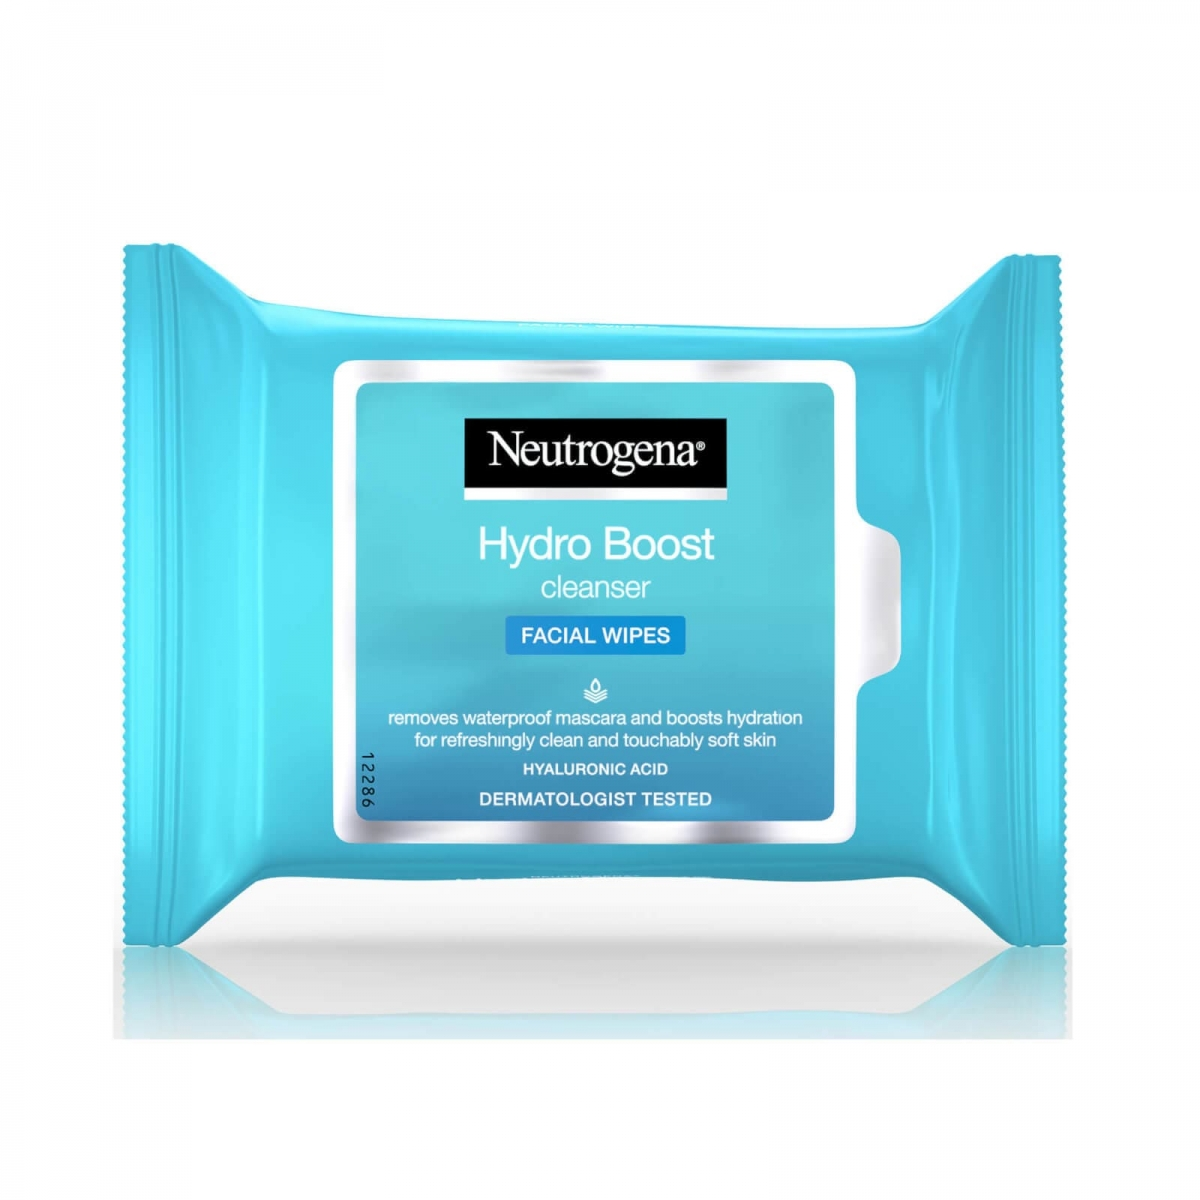 Hydro Boost Cleansing Facial Wipes